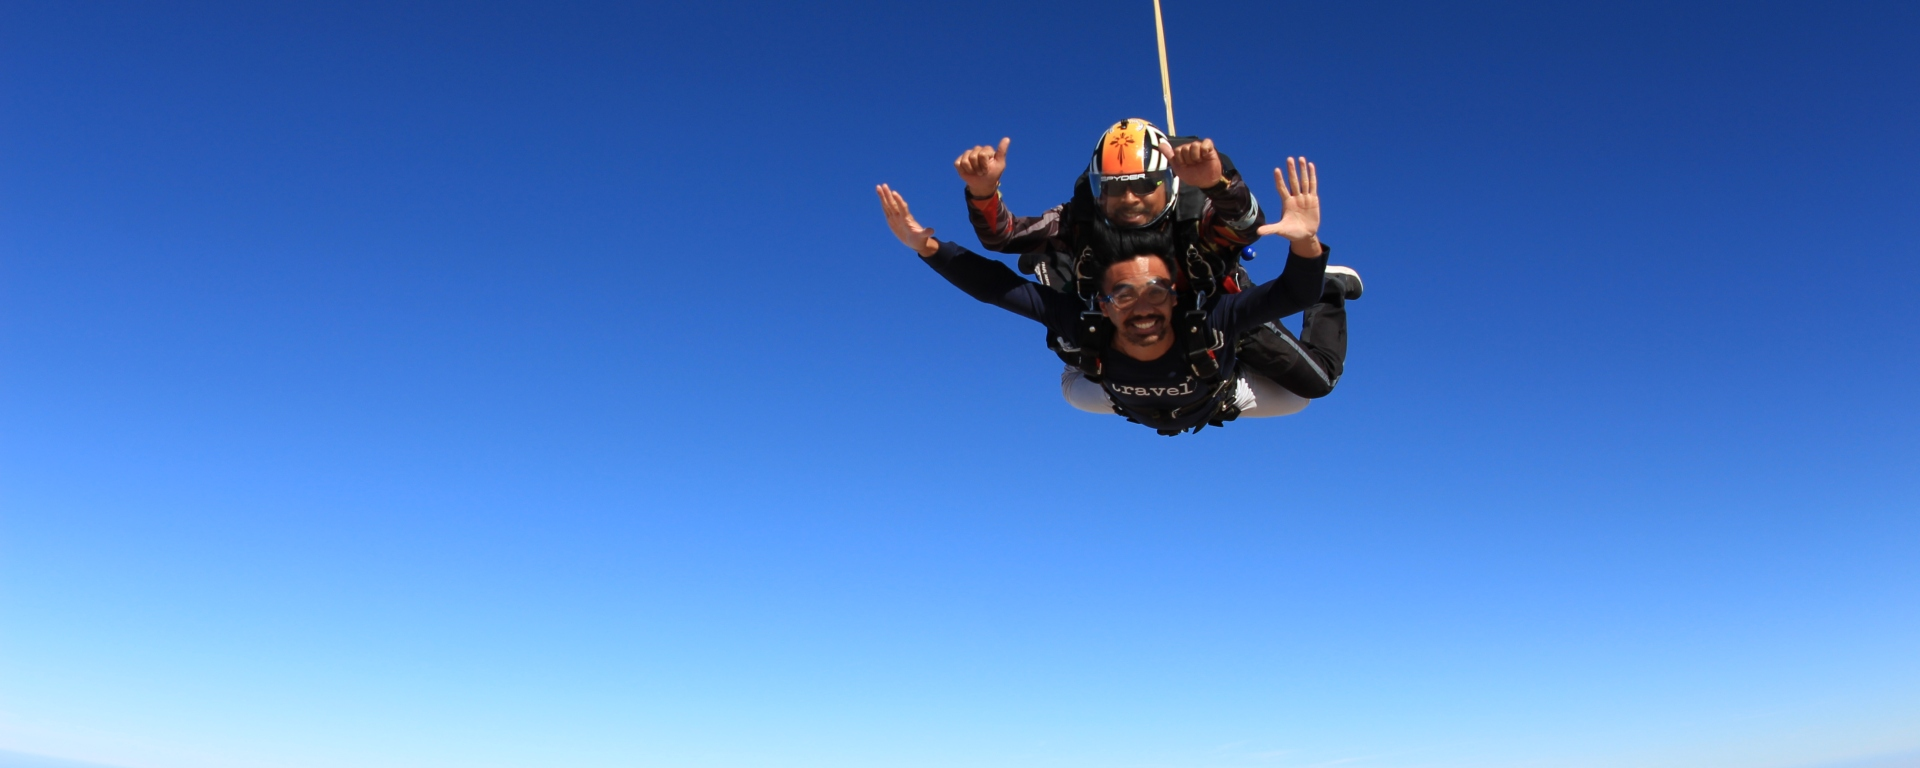 The Journeying Engineer skydiving in Dubai